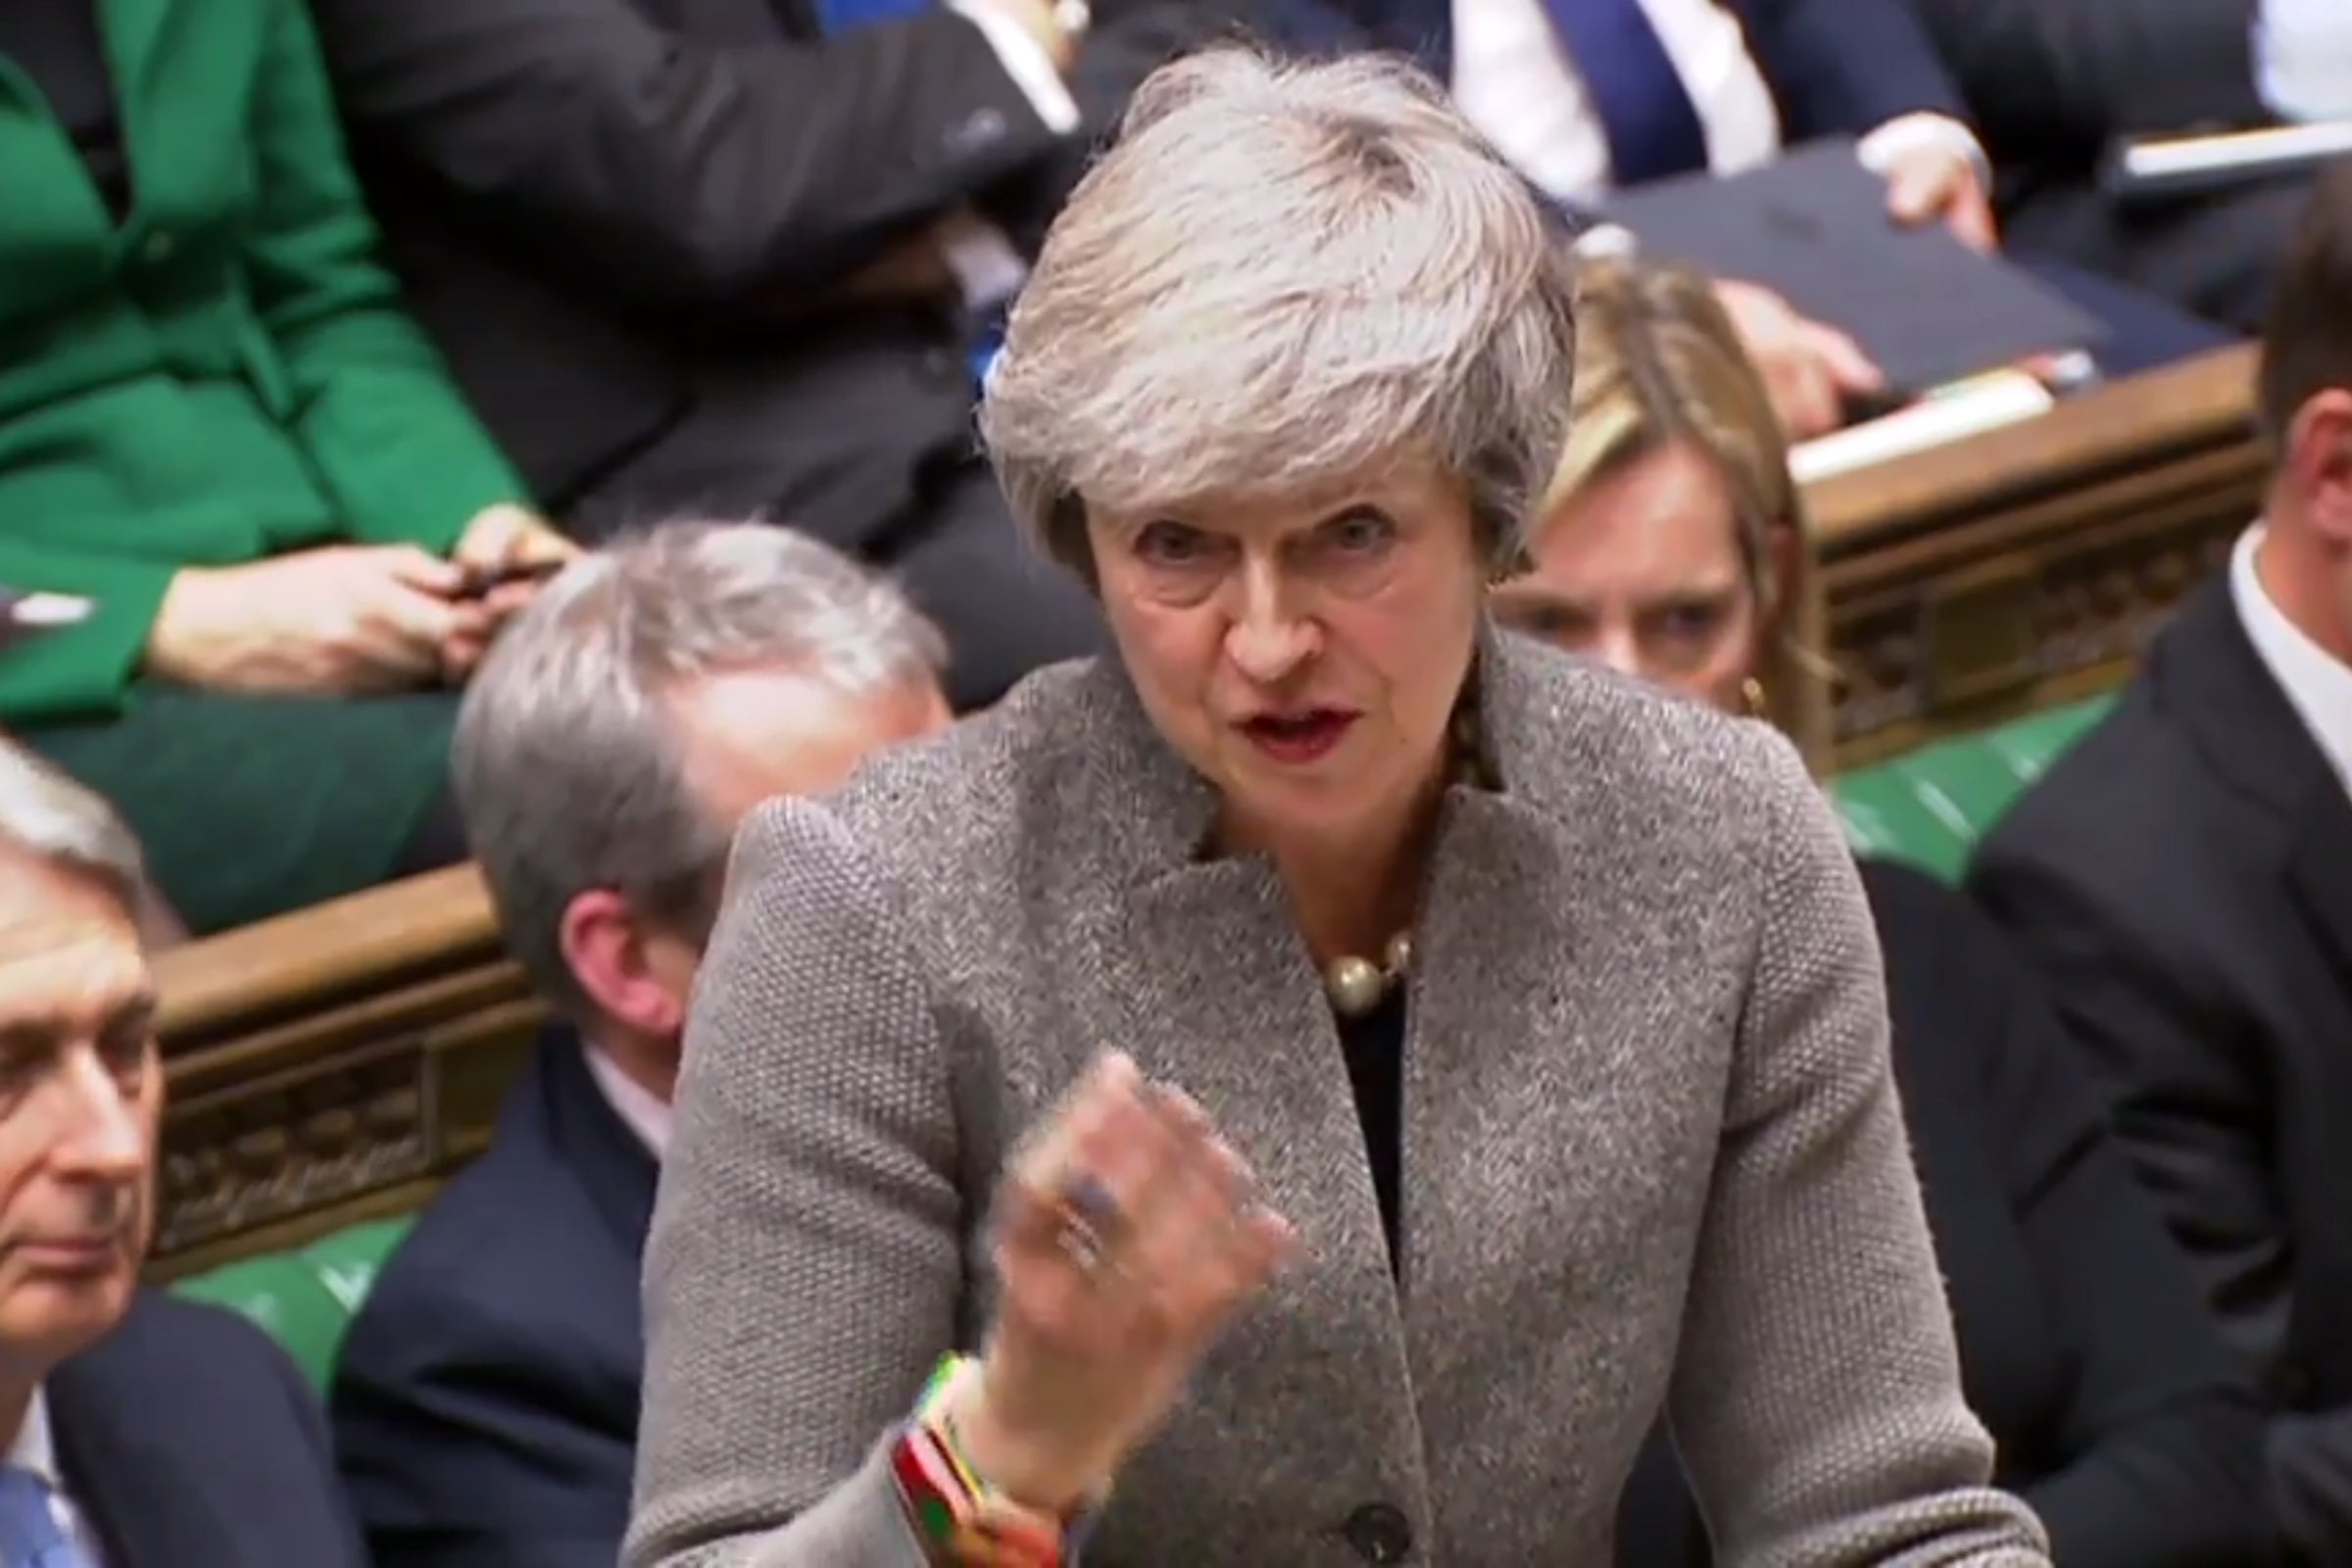 Theresa May stood up in parliament and said she had to 'honour her duty' to Brexit. She couldn't have been more wrong